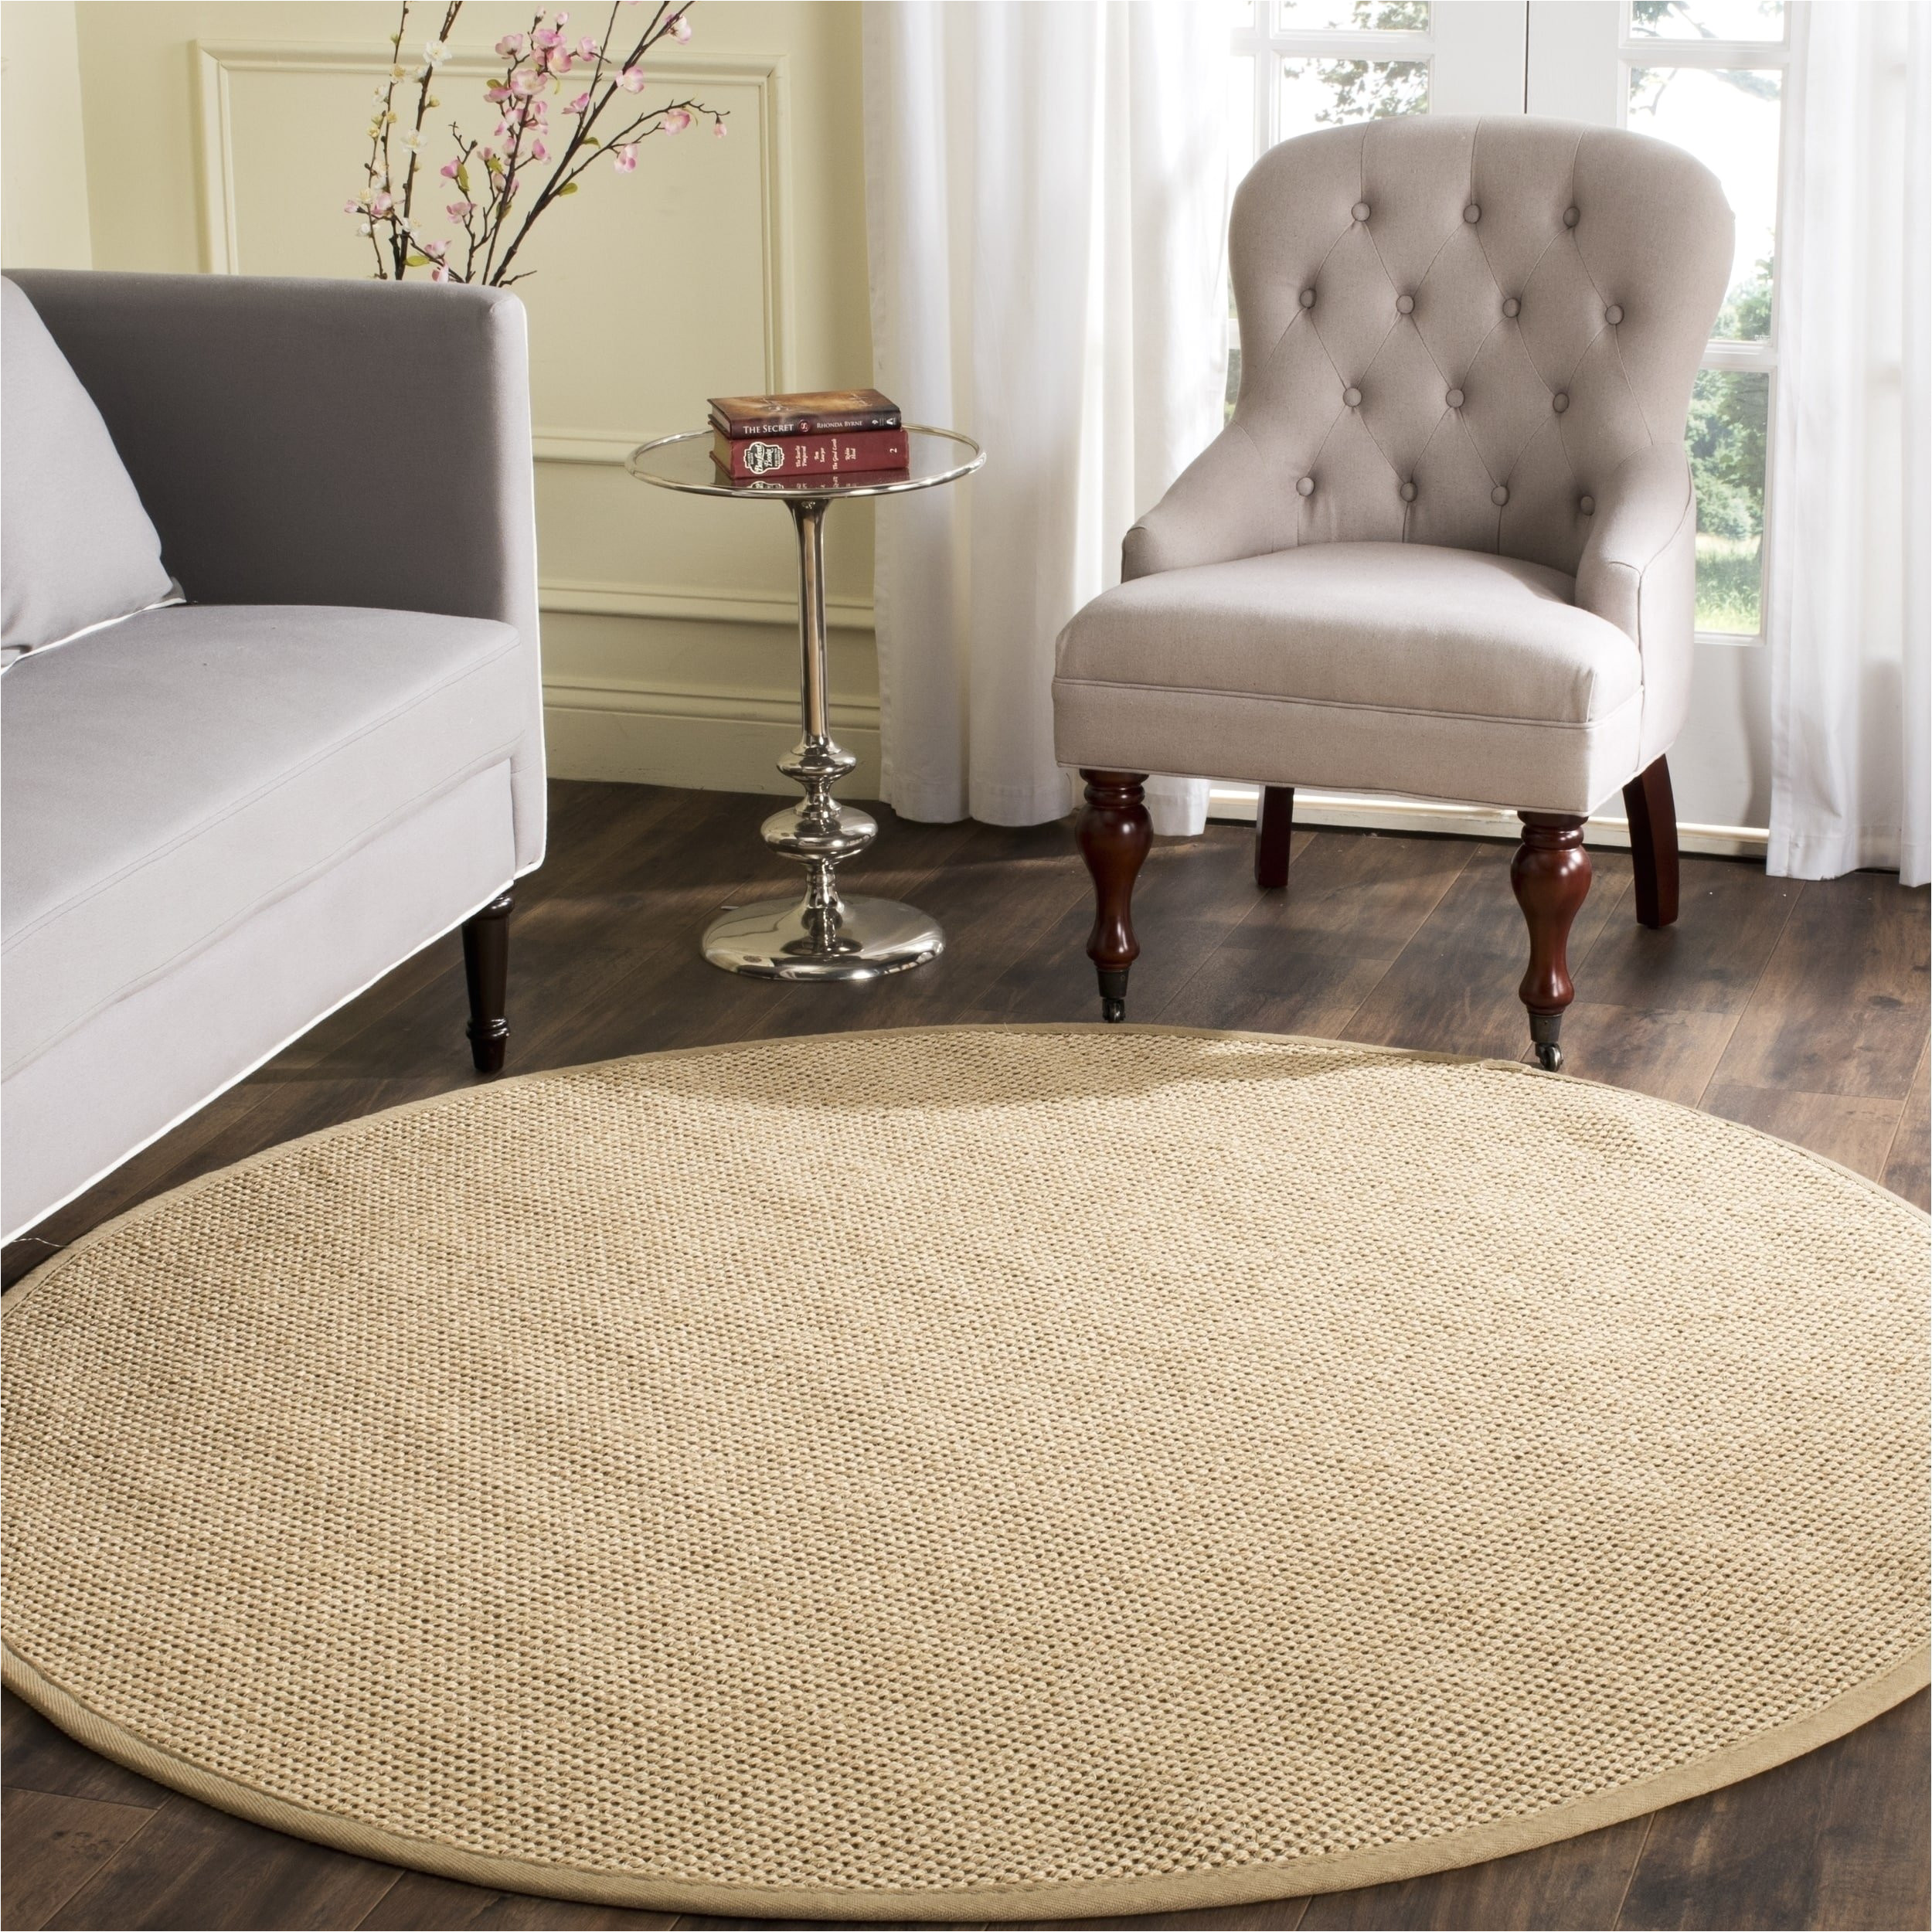 shop safavieh casual natural fiber natural maize ivory linen sisal area rug 8 x 8 round on sale free shipping today overstock com 13312062